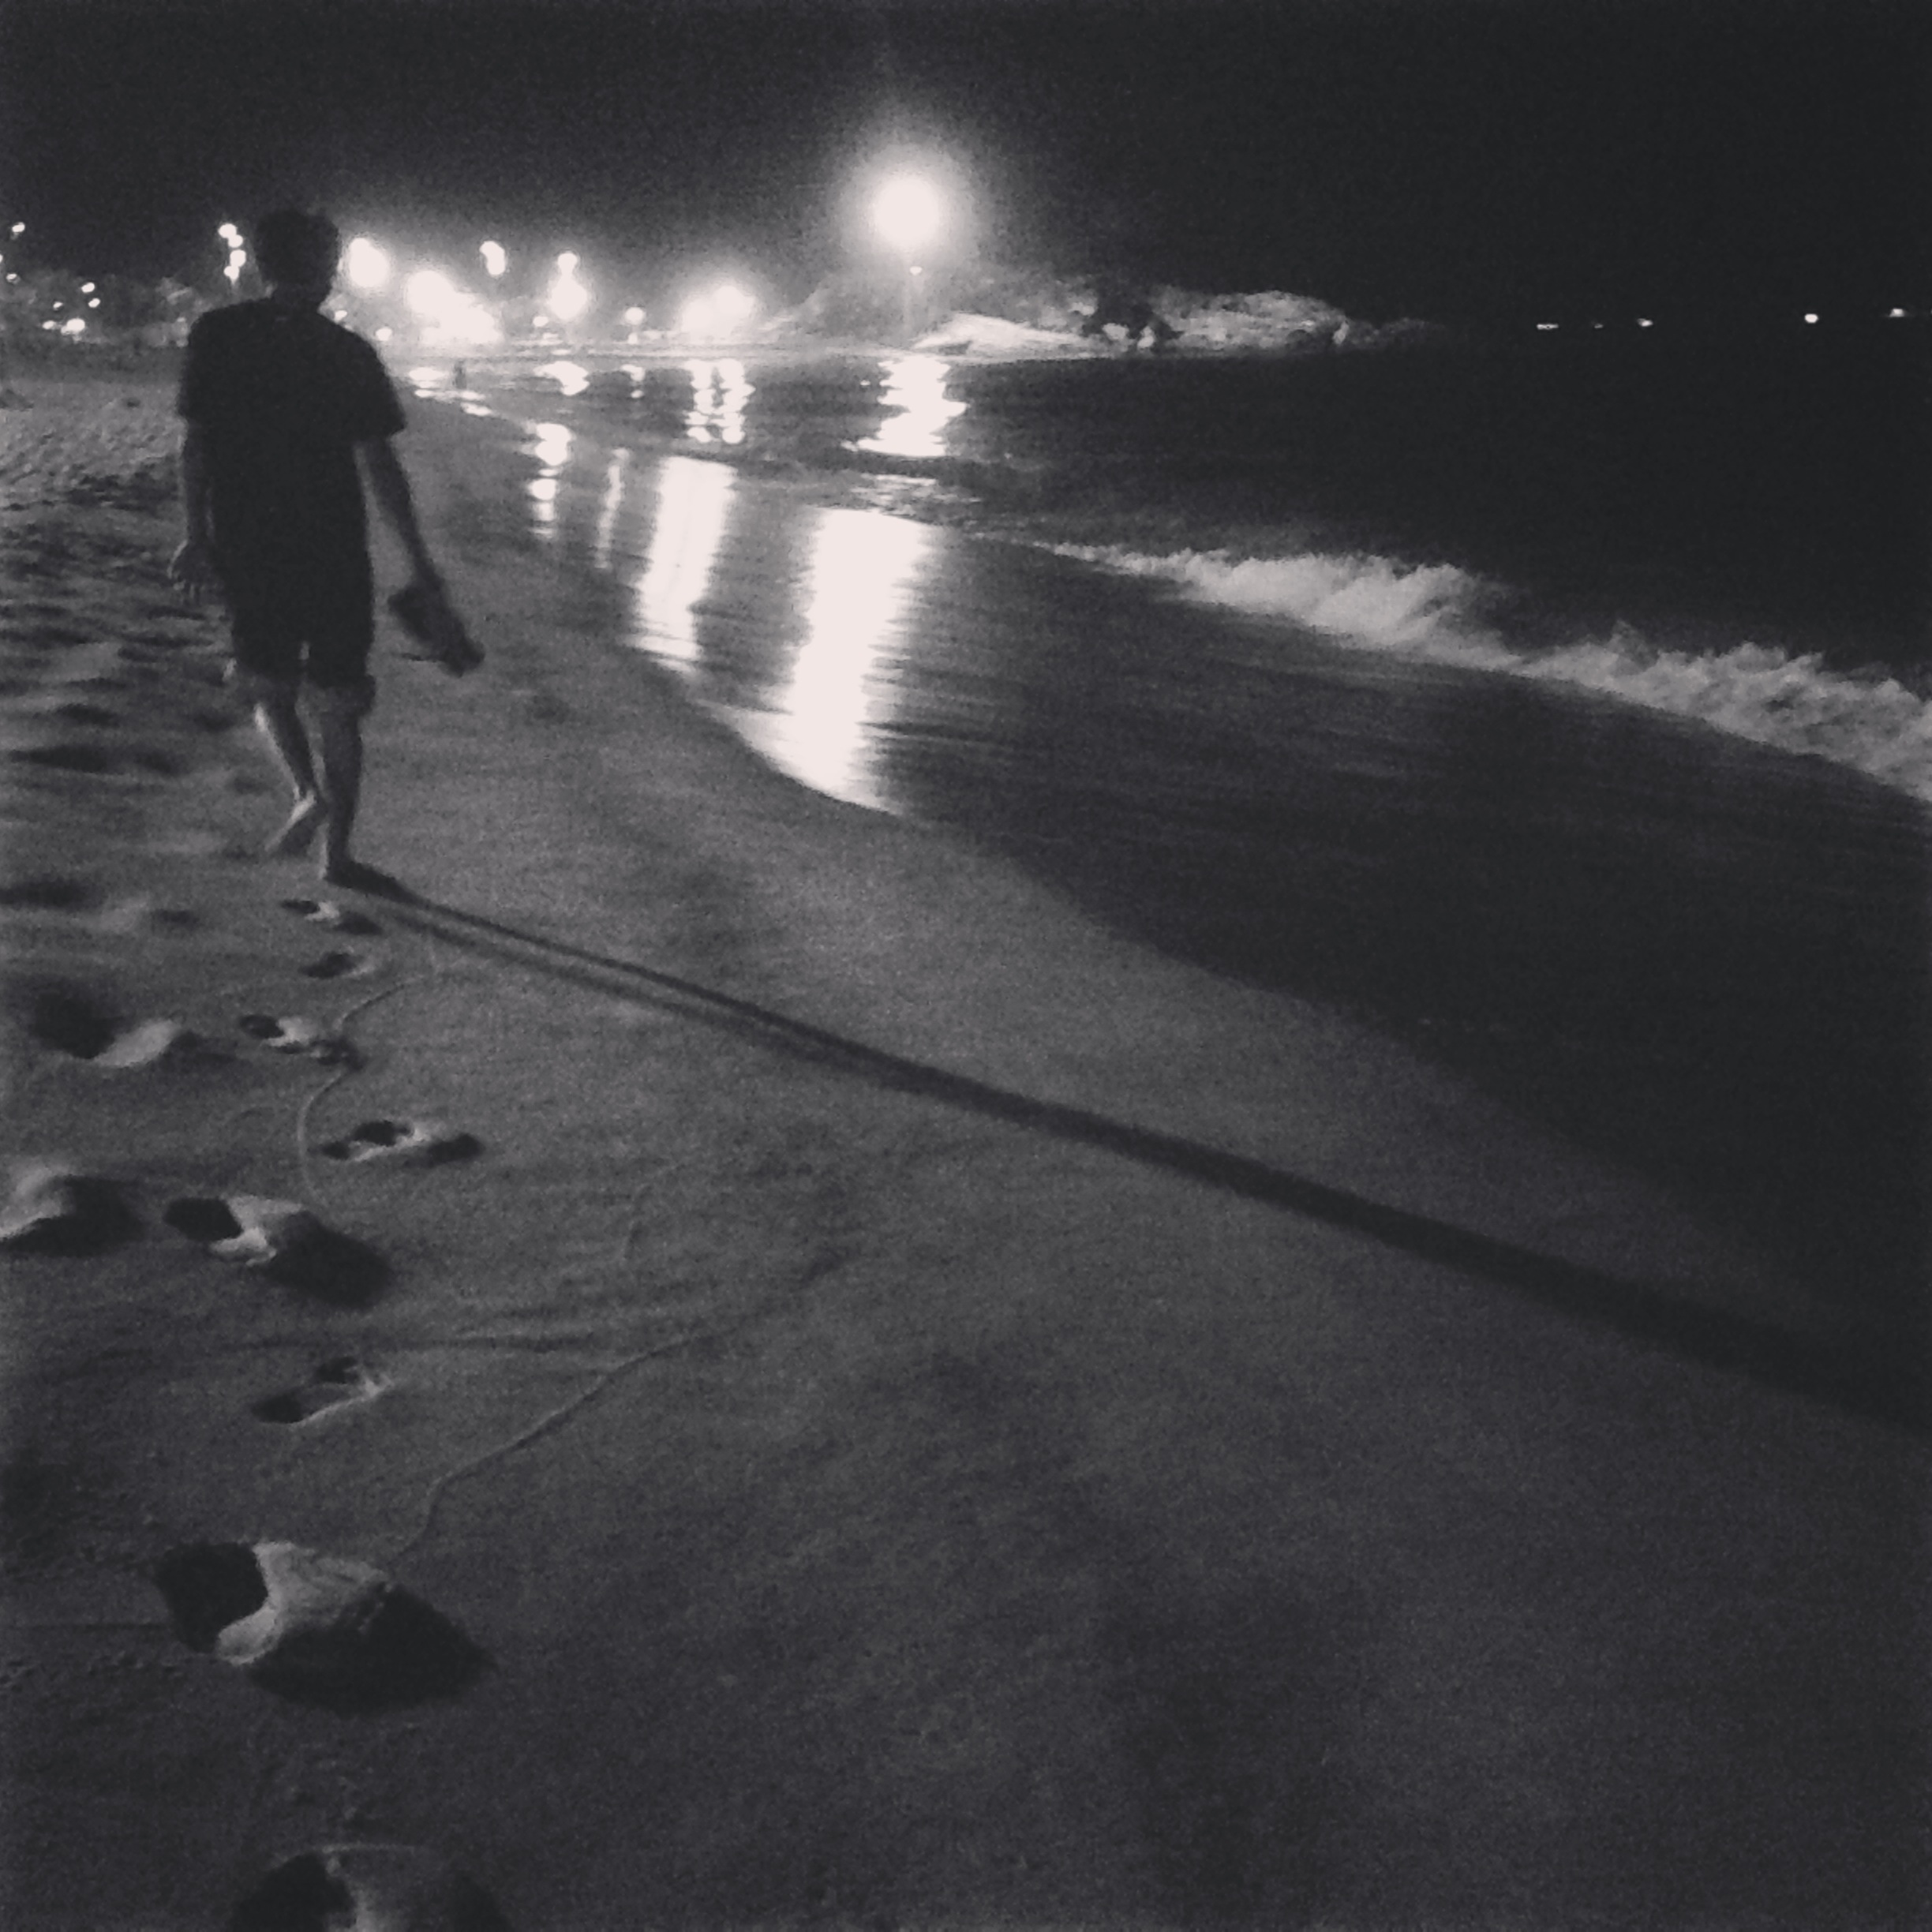 Night by the sea